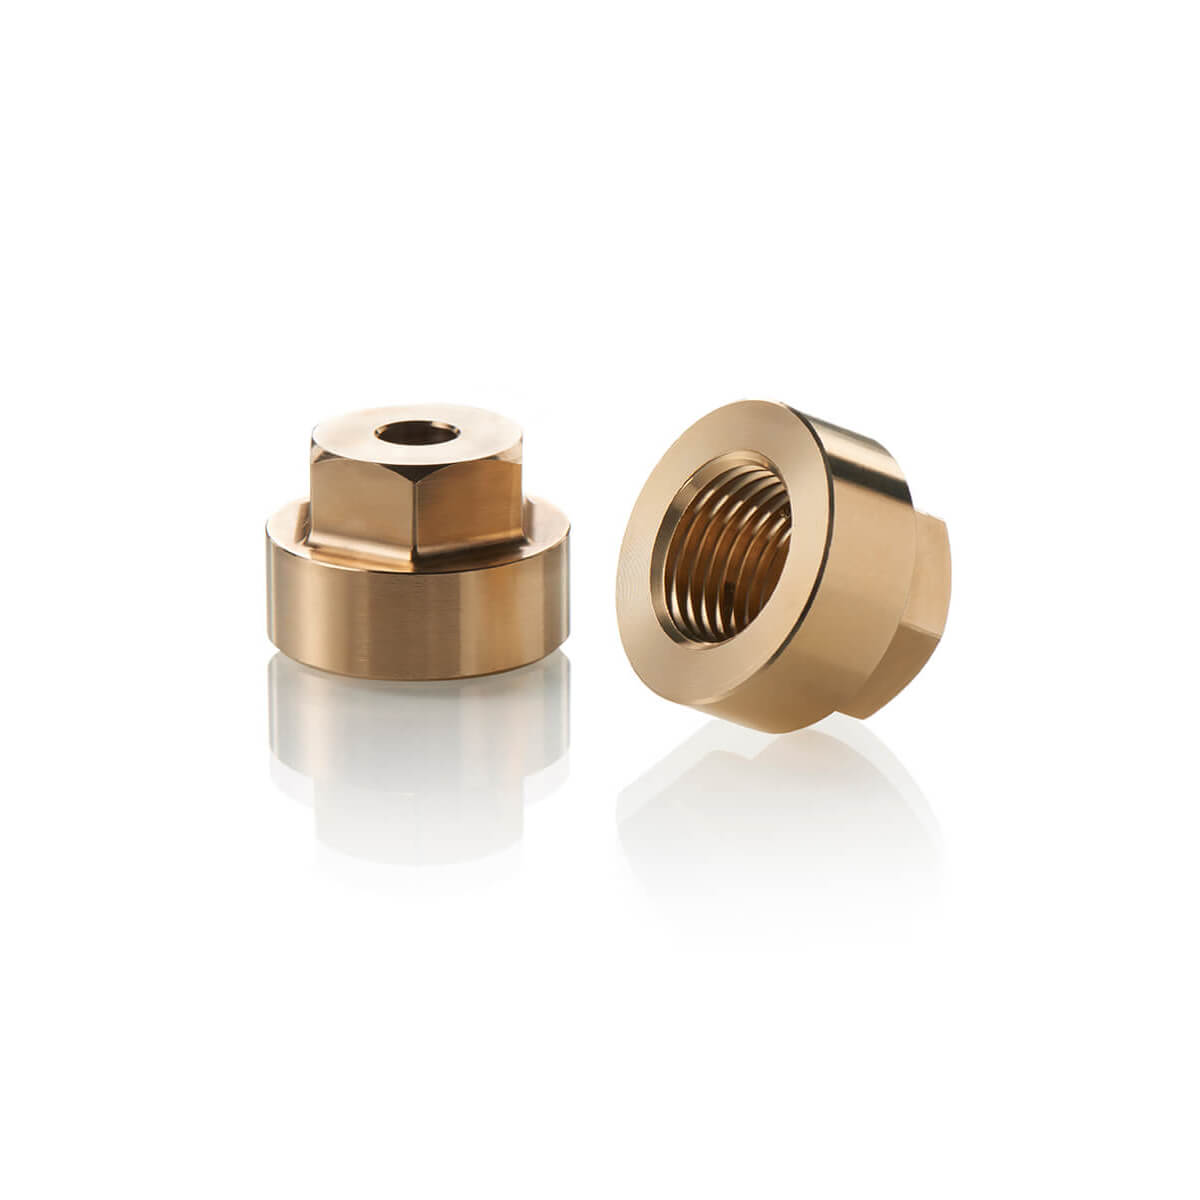 nut for saildrive m20x2 nuts original spare parts by flexofold